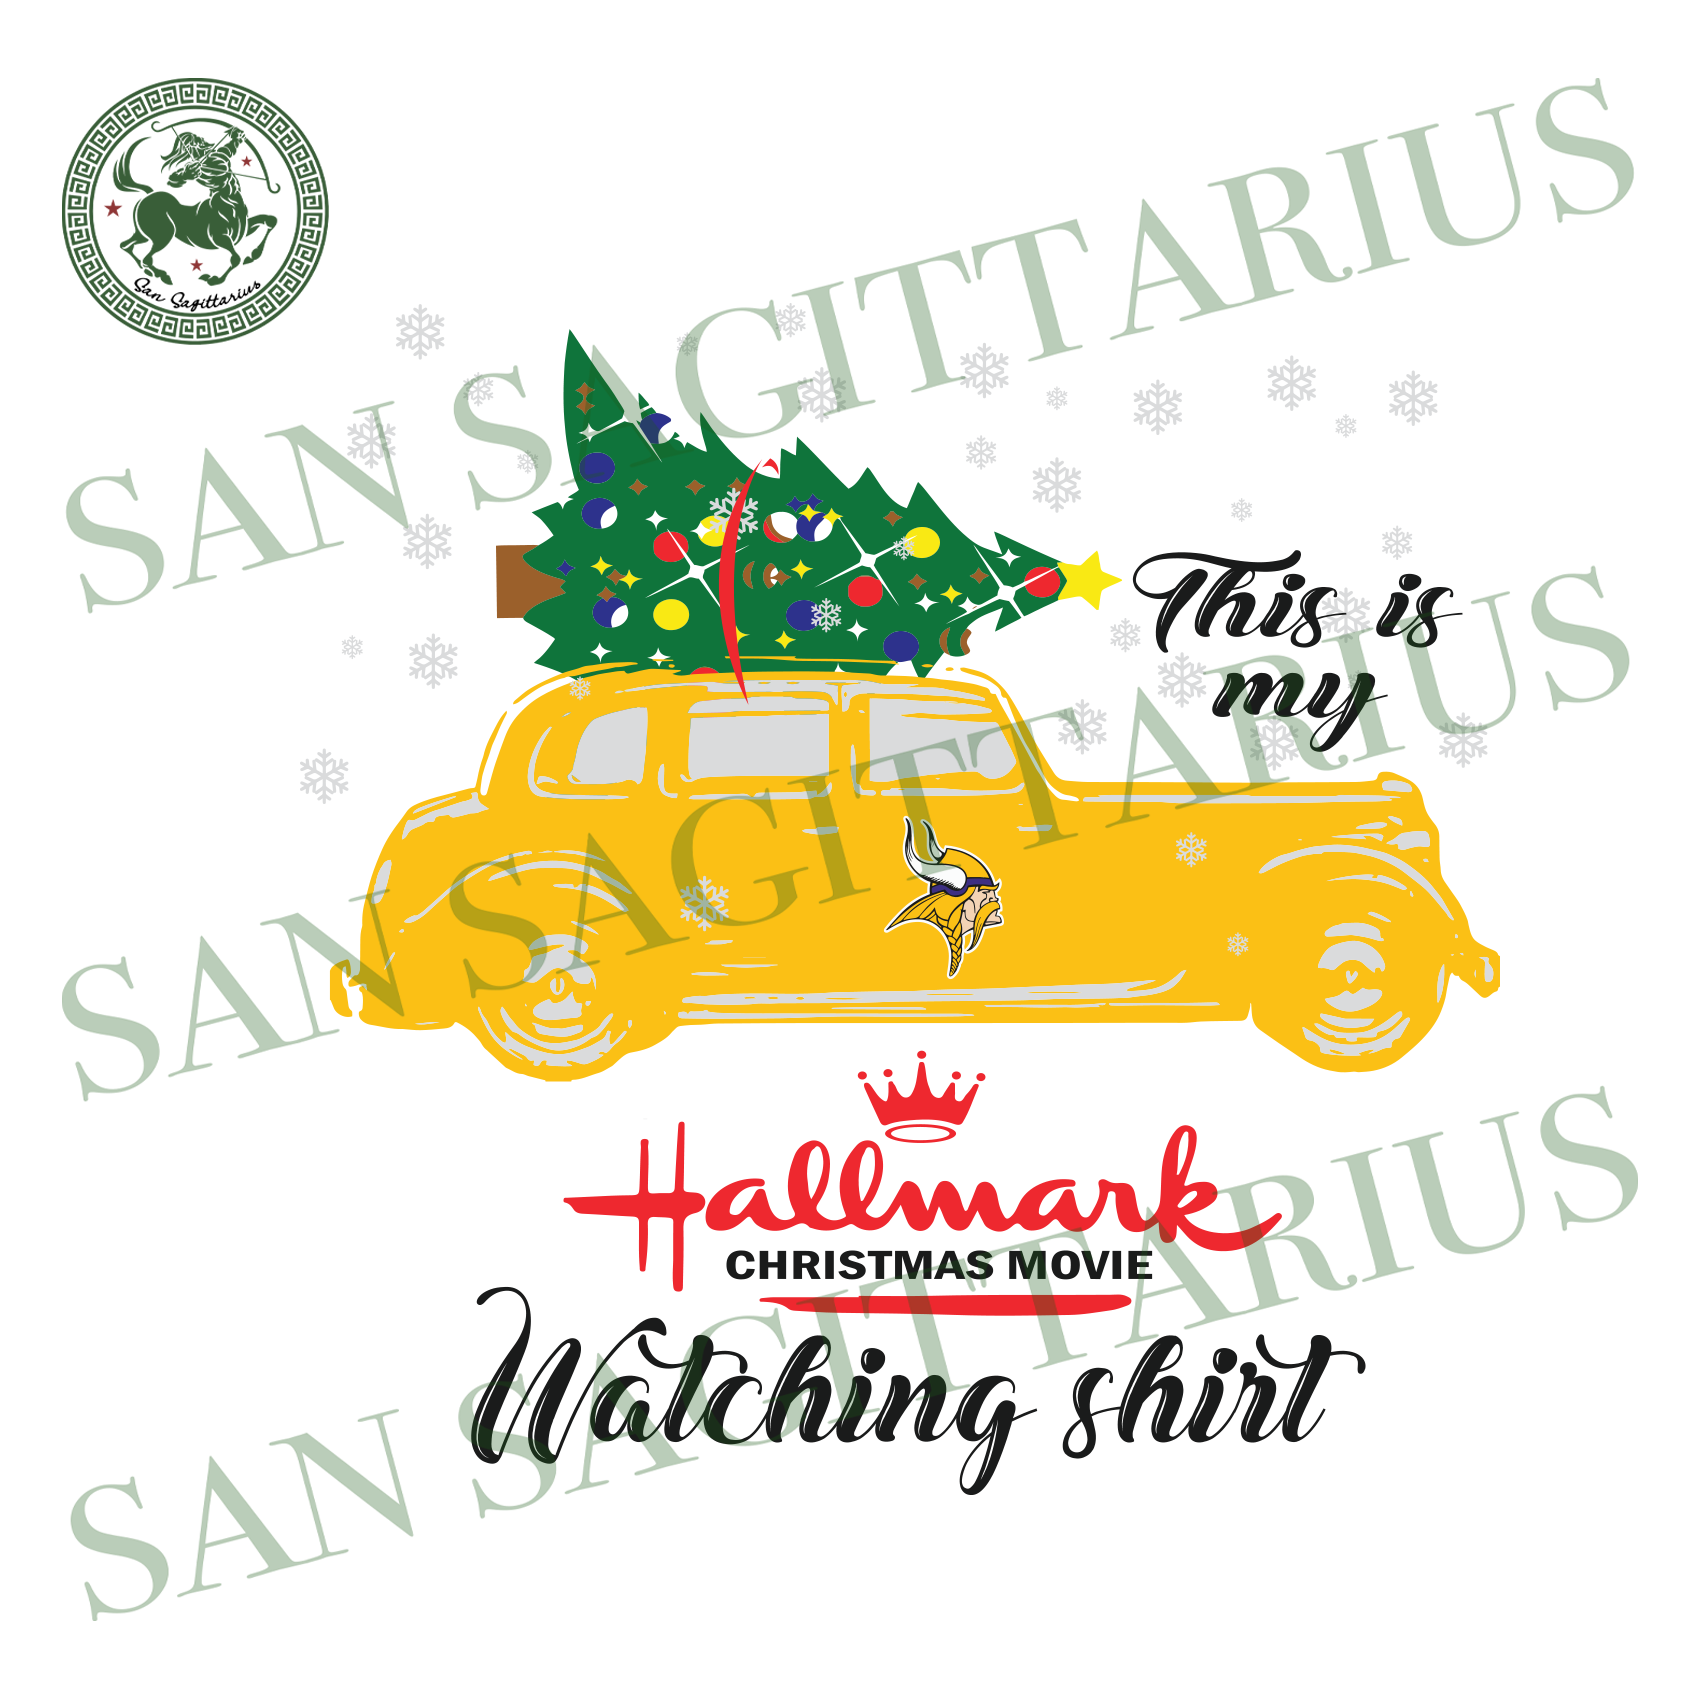 Minnesota VikingsThis Is My Hallmark Christmas Movie Watching Shirt, Sport Svg, Christmas Svg, Minnesota Vikings Svg, NFL Sport Svg, Minnesota Vikings NFL Svg, Minnesota Vikings NFL Gift, Foo